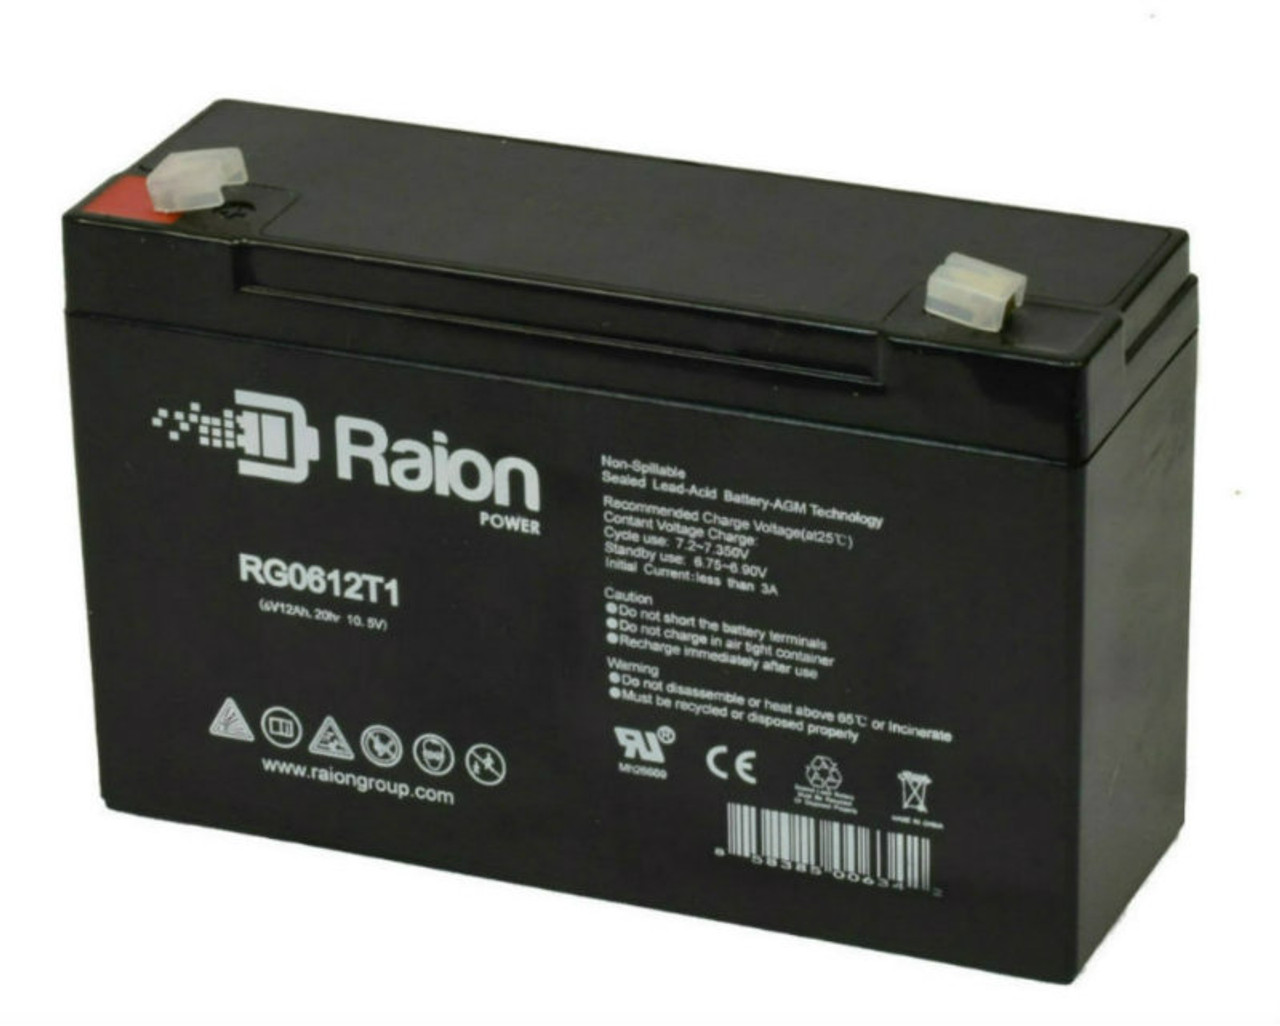 Raion Power RG06120T1 Replacement Battery Pack for Sure-Lites 3903 emergency light